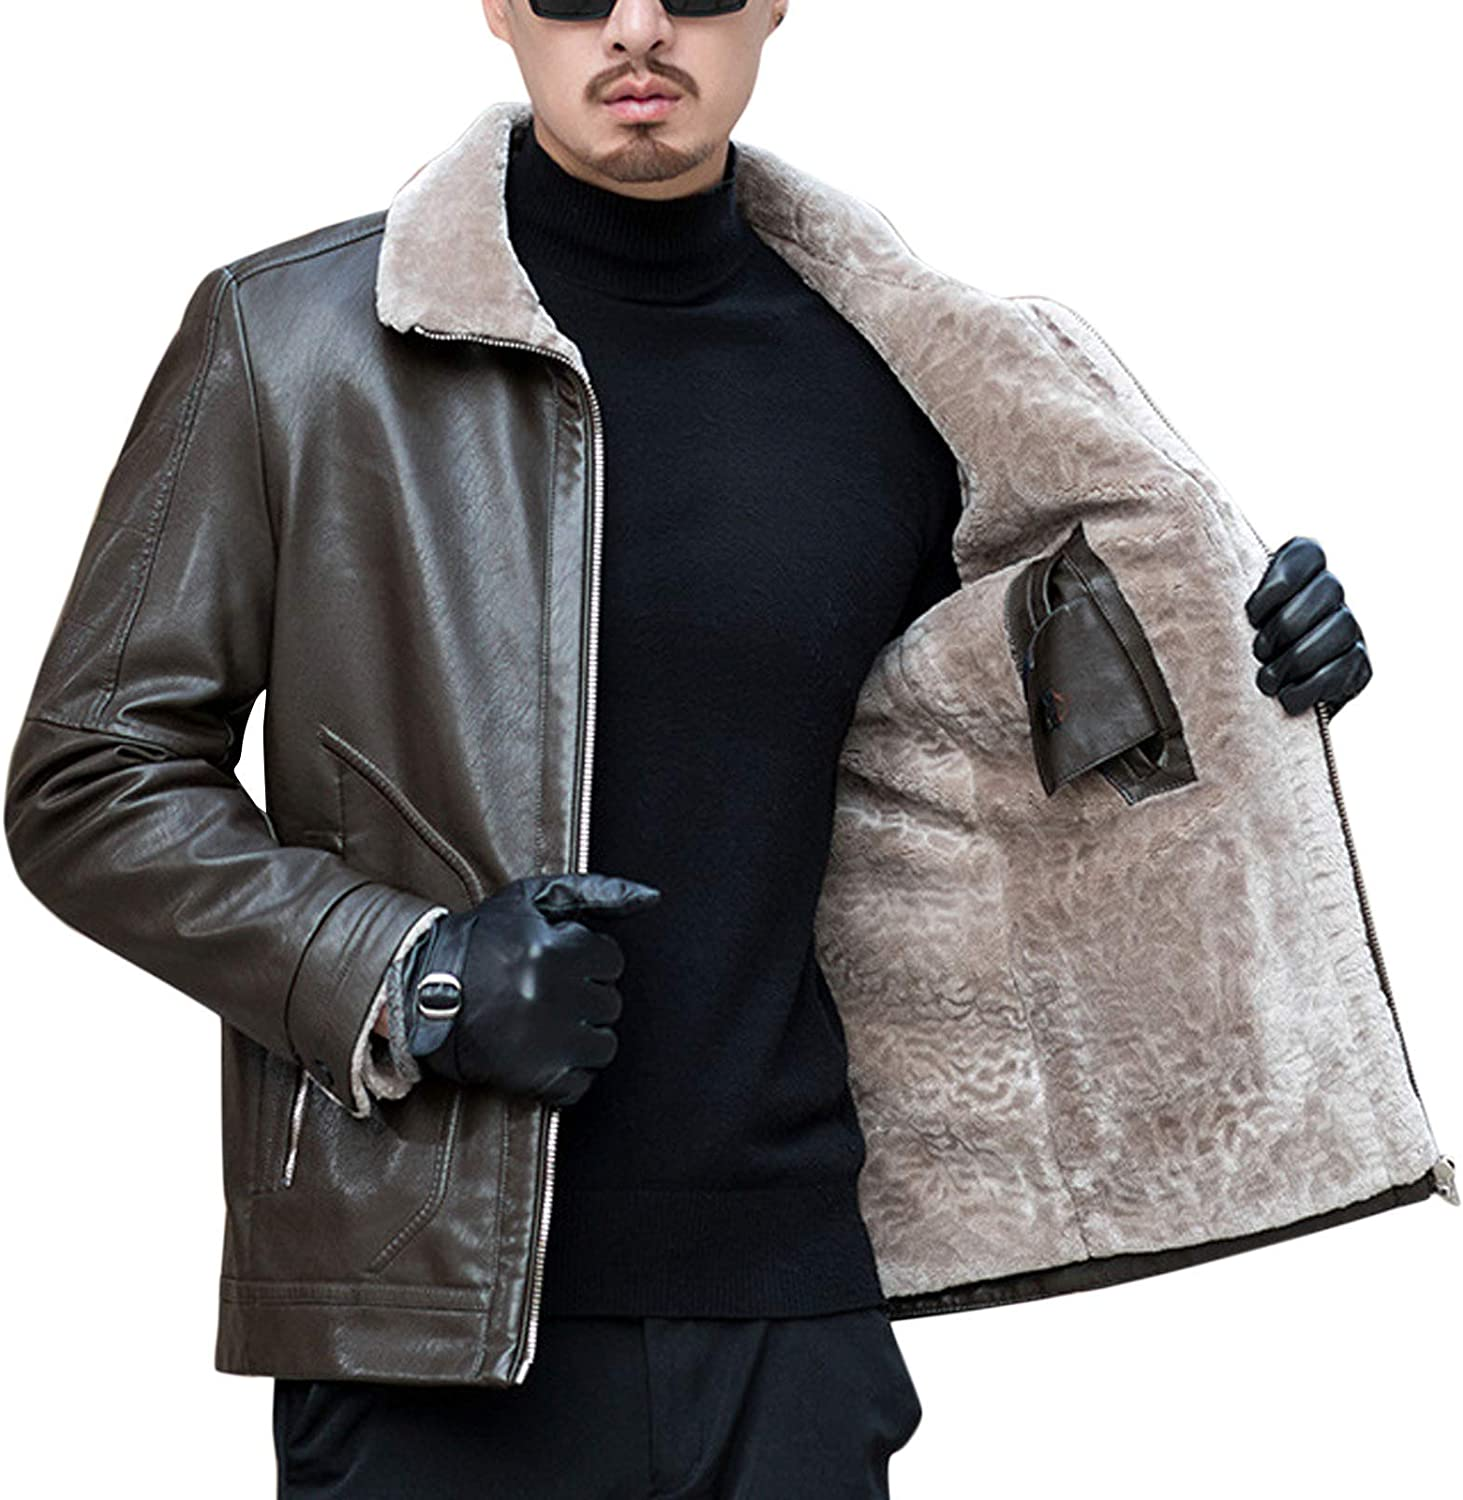 Flygo Men's Warm Sherpa Fleece Lined Faux Leather Motorcycle Jacket with Fur Collar